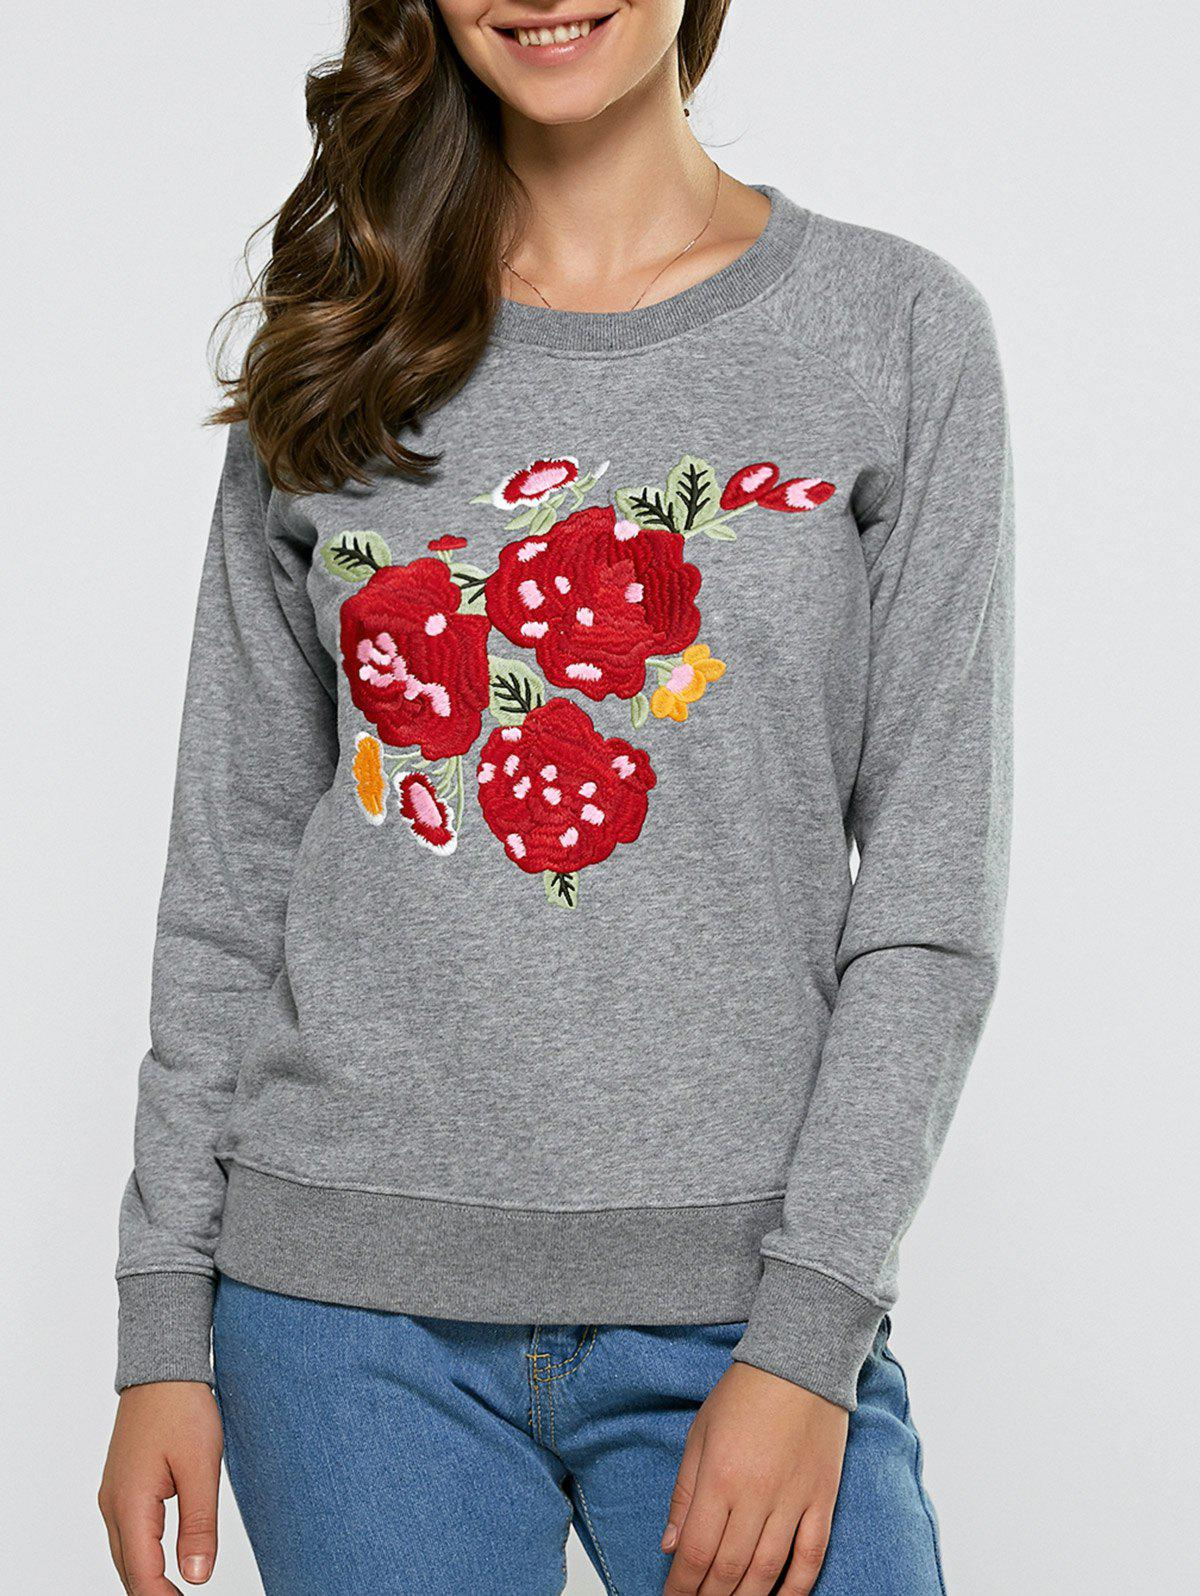 Shop Floral Embroidered Casual Sweatshirt